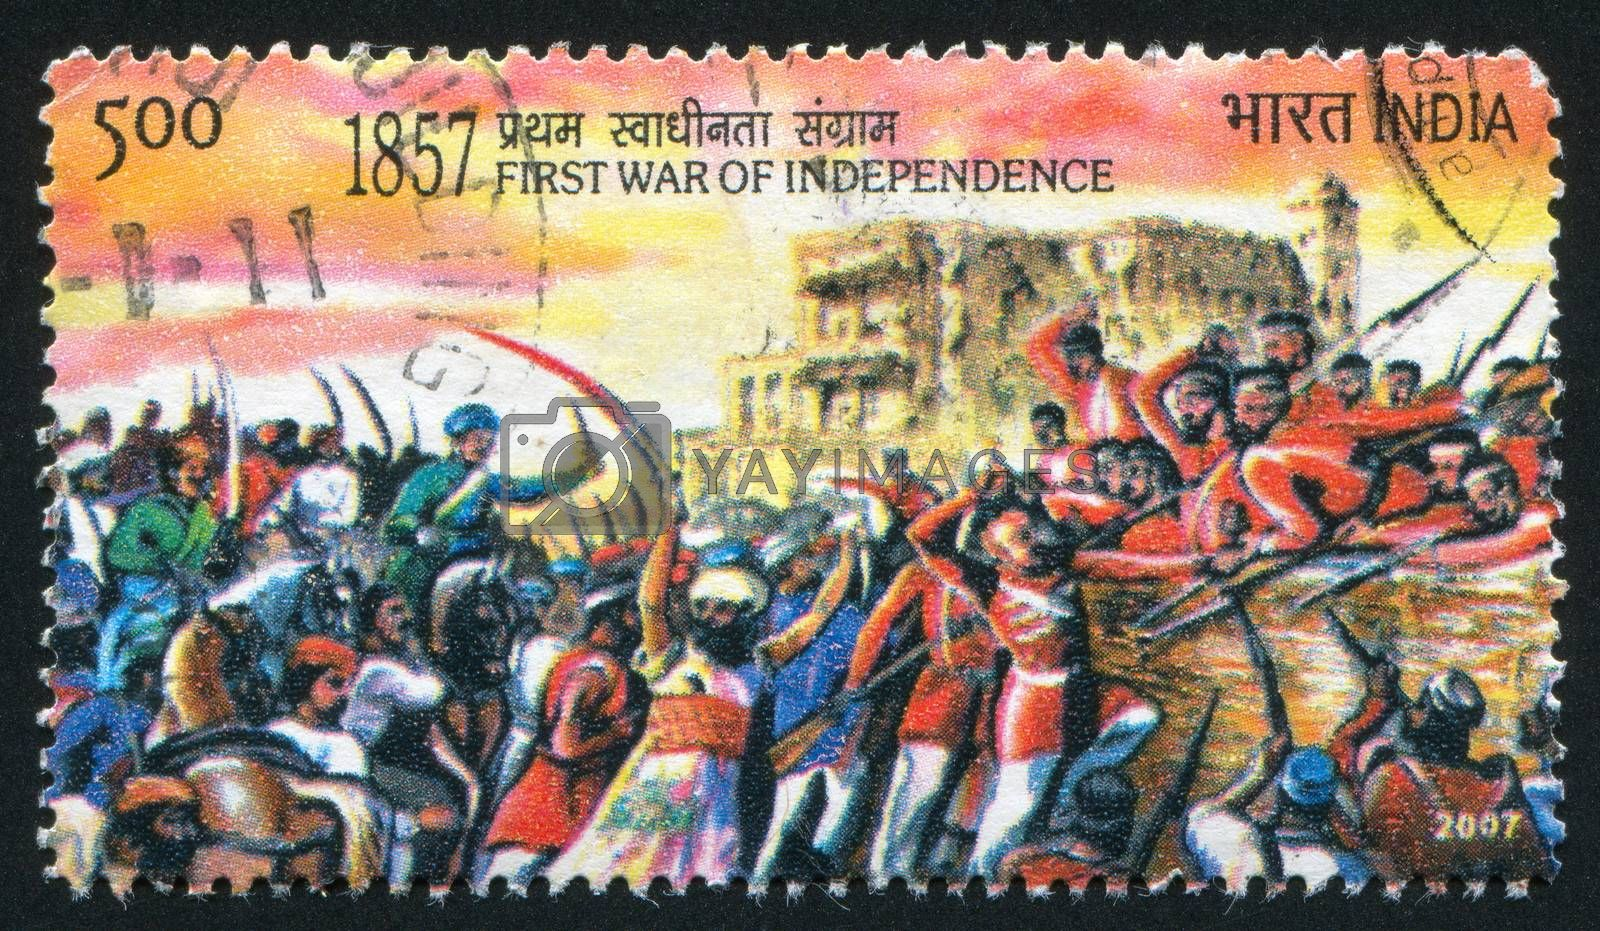 INDIA - CIRCA 2007: stamp printed by India, shows people and soldiers with swords, guns, circa 2007